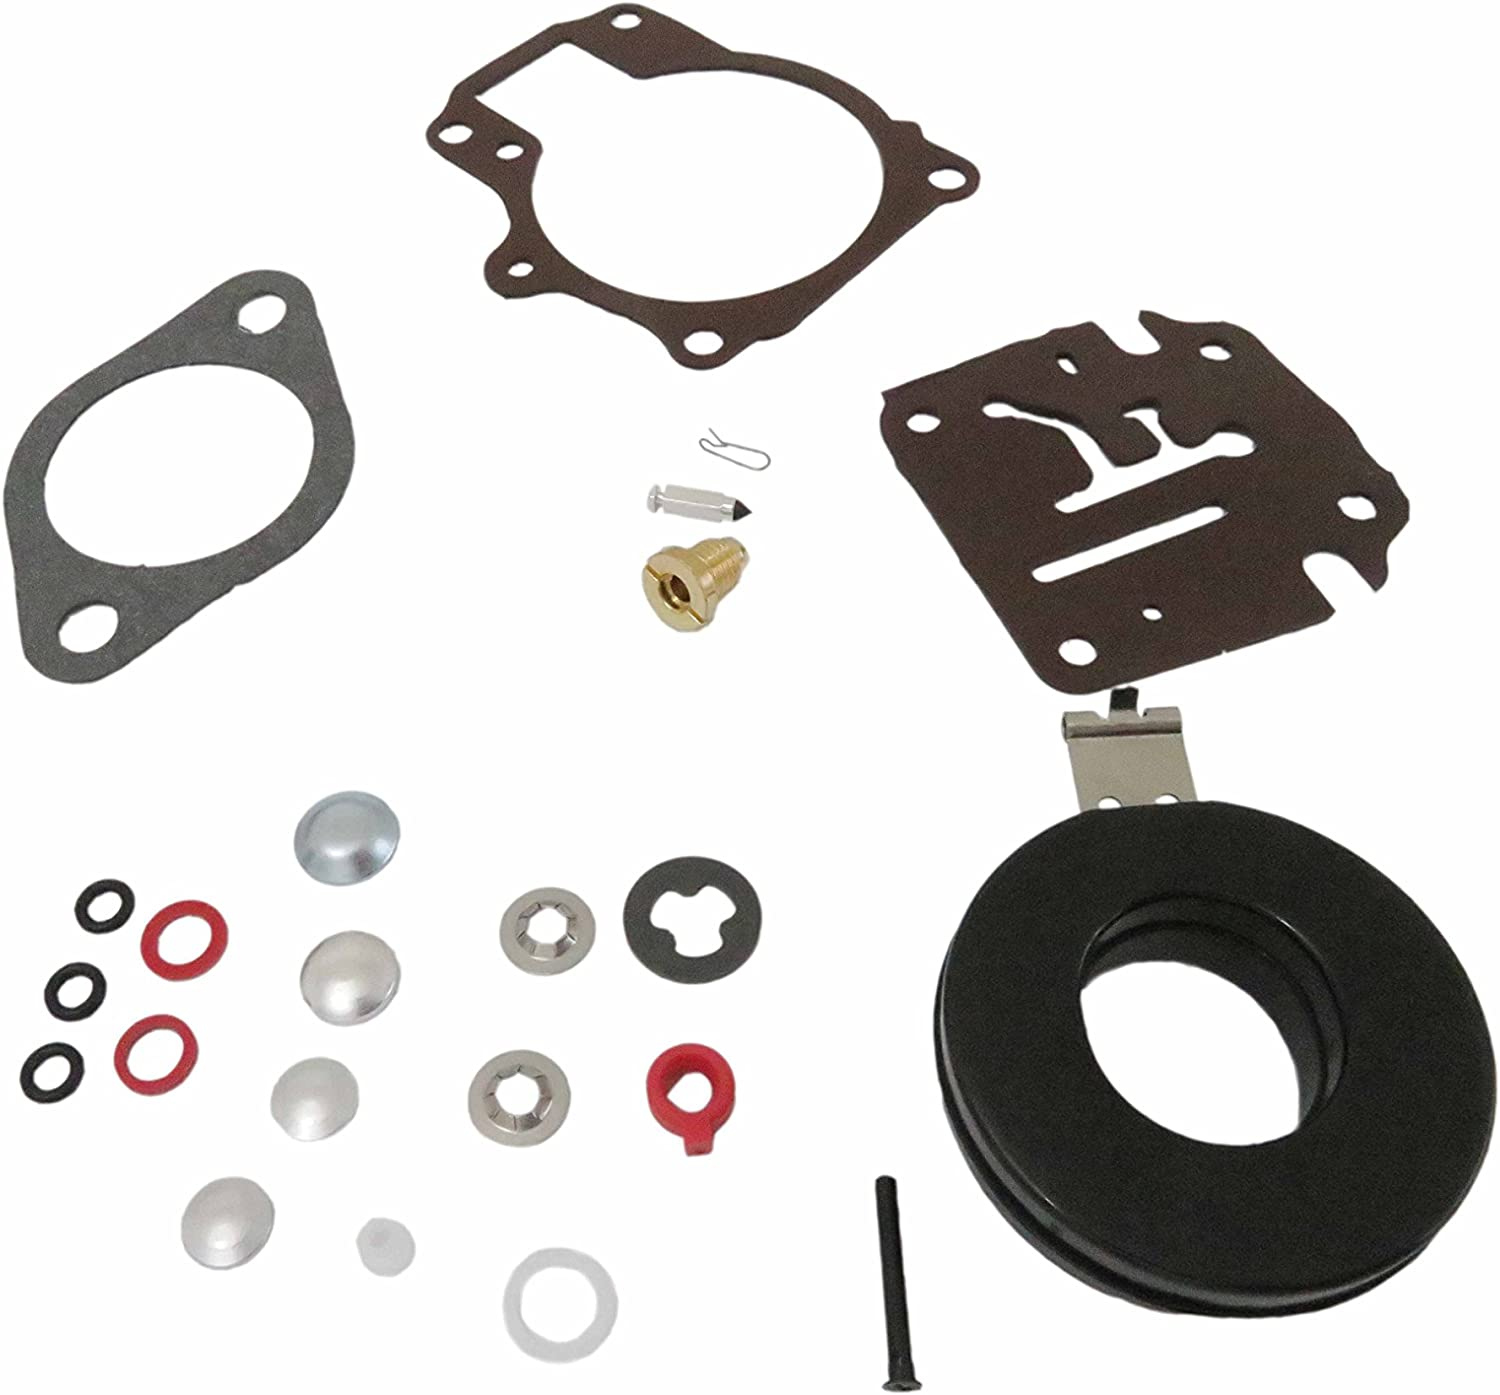 396701 Carb Repair Kits For Johnson Evinrude Carburetor 18 20 25 28 30 35 40 45 48 50 55 60 65 70 75 HP Outboard Motors with Floats